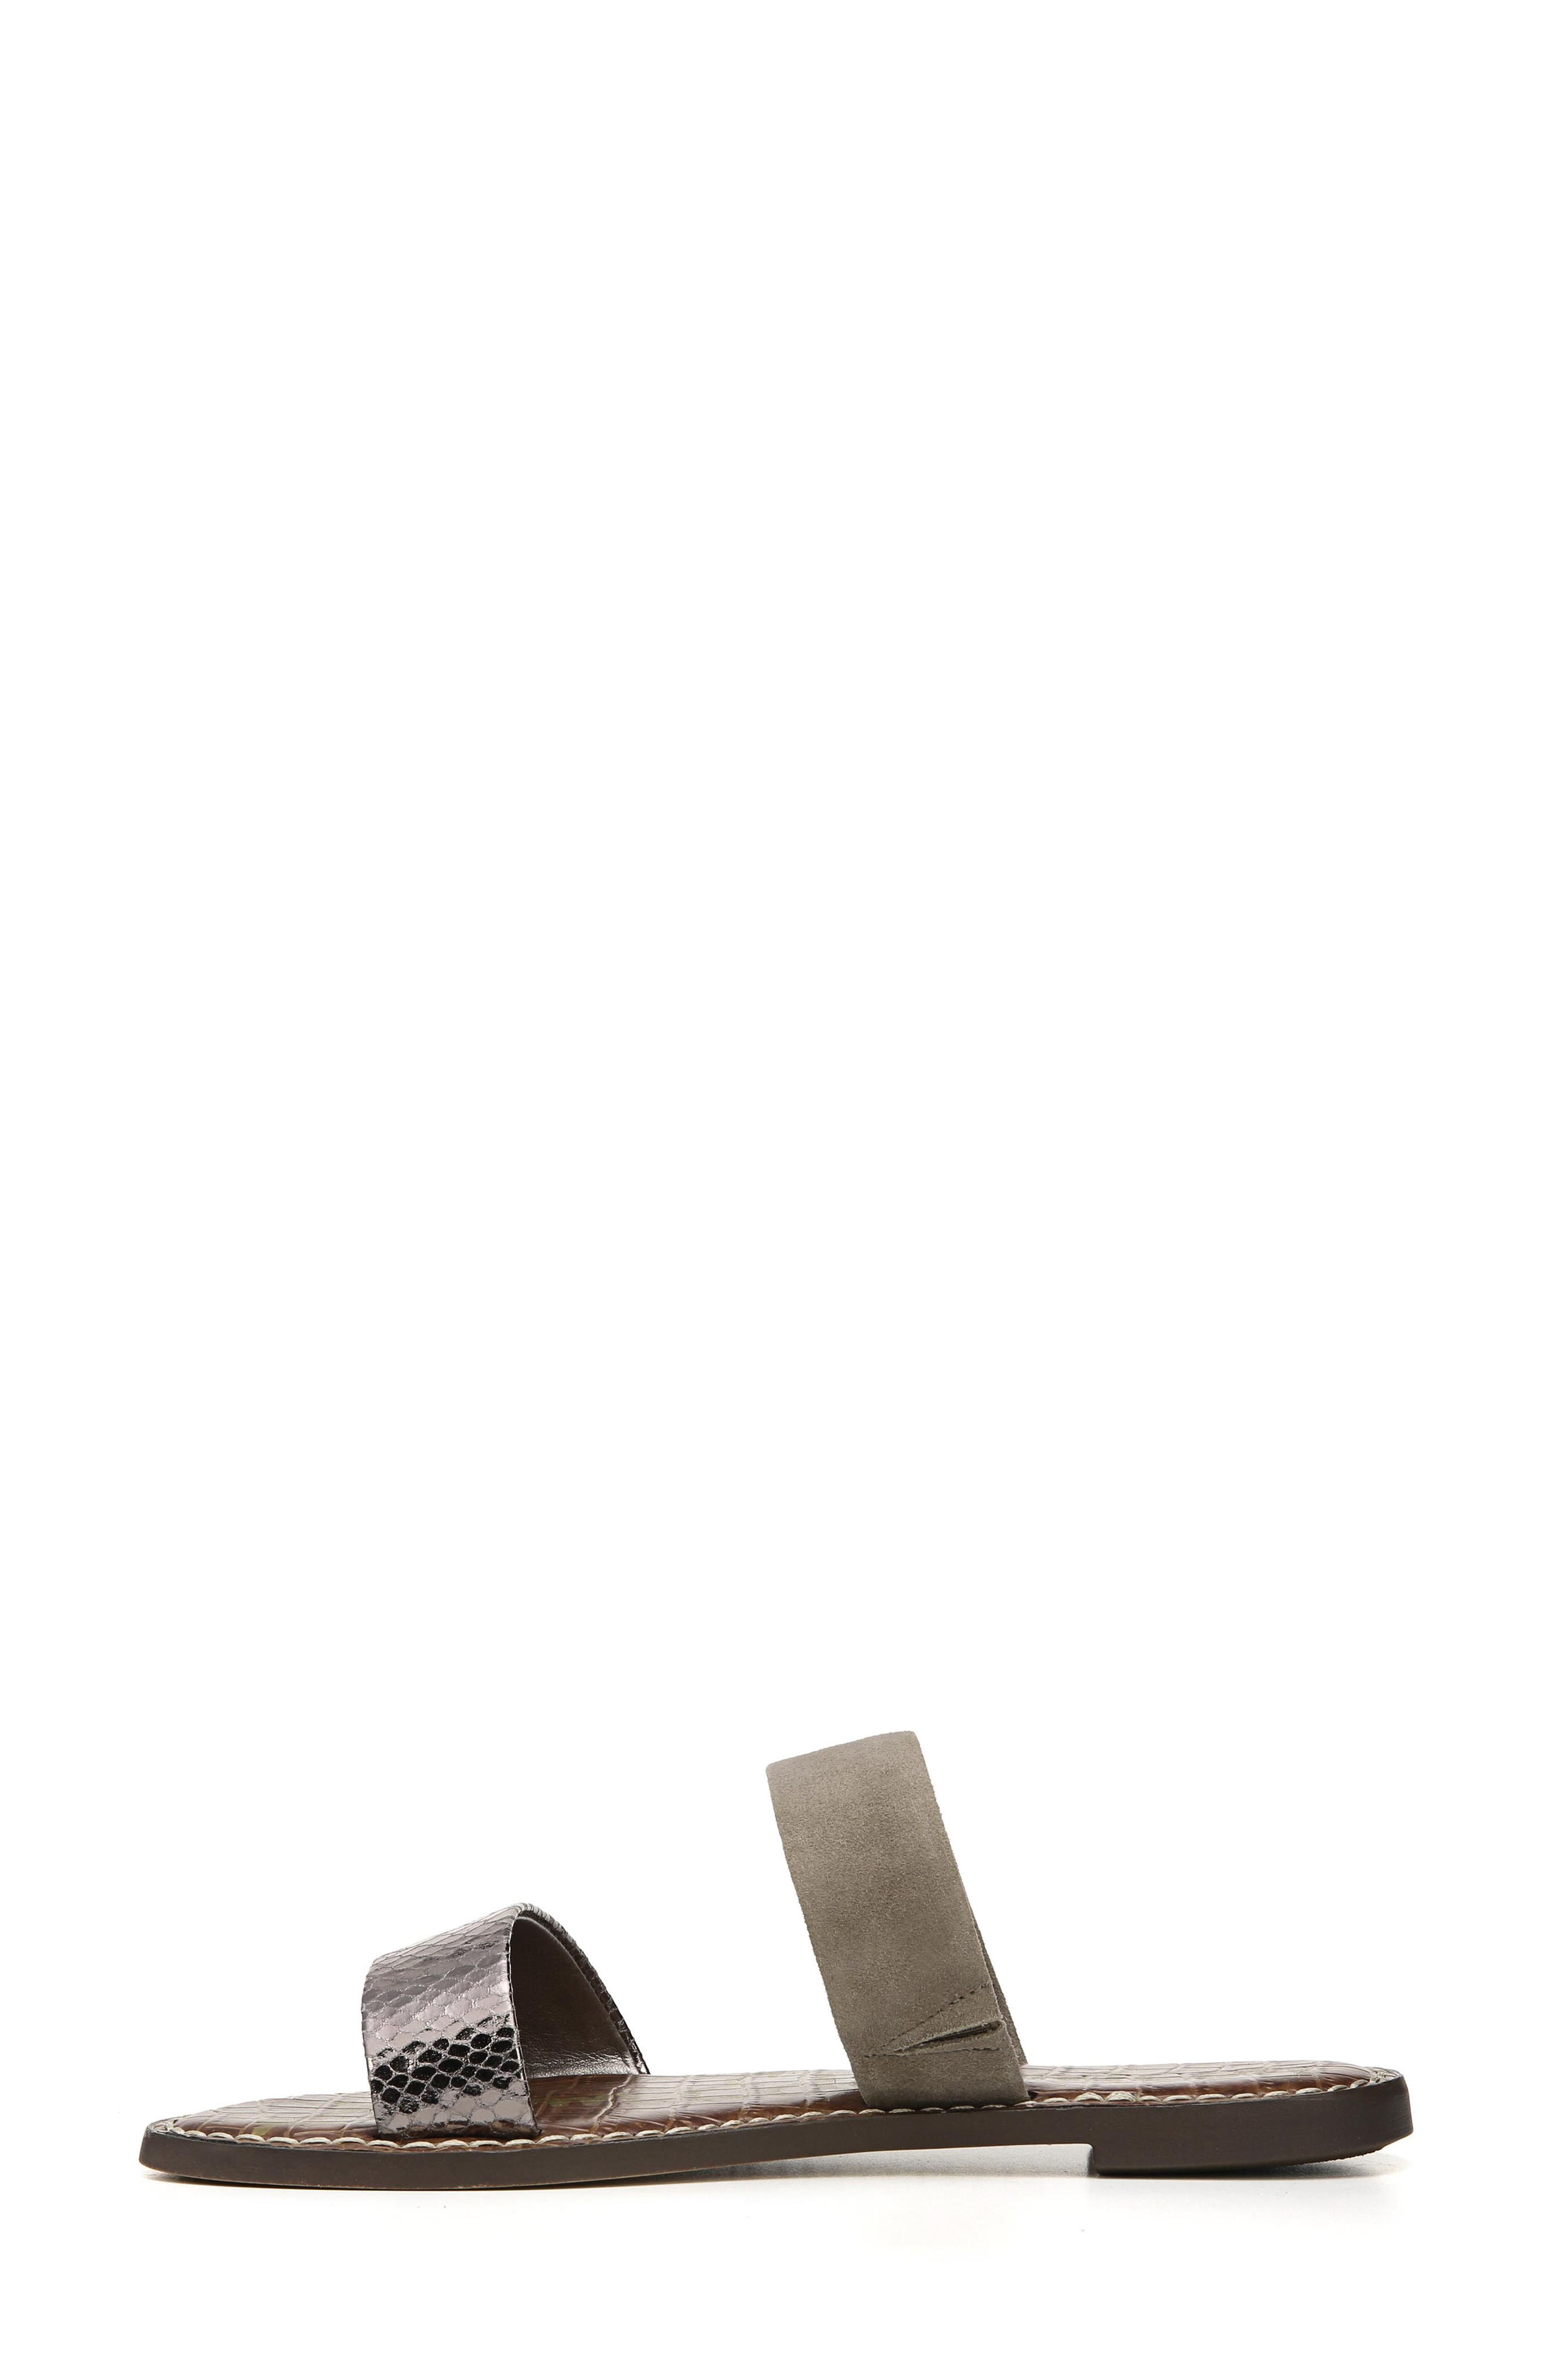 Gala Two Strap Slide Sandal,                             Alternate thumbnail 3, color,                             PEWTER/ PUTTY